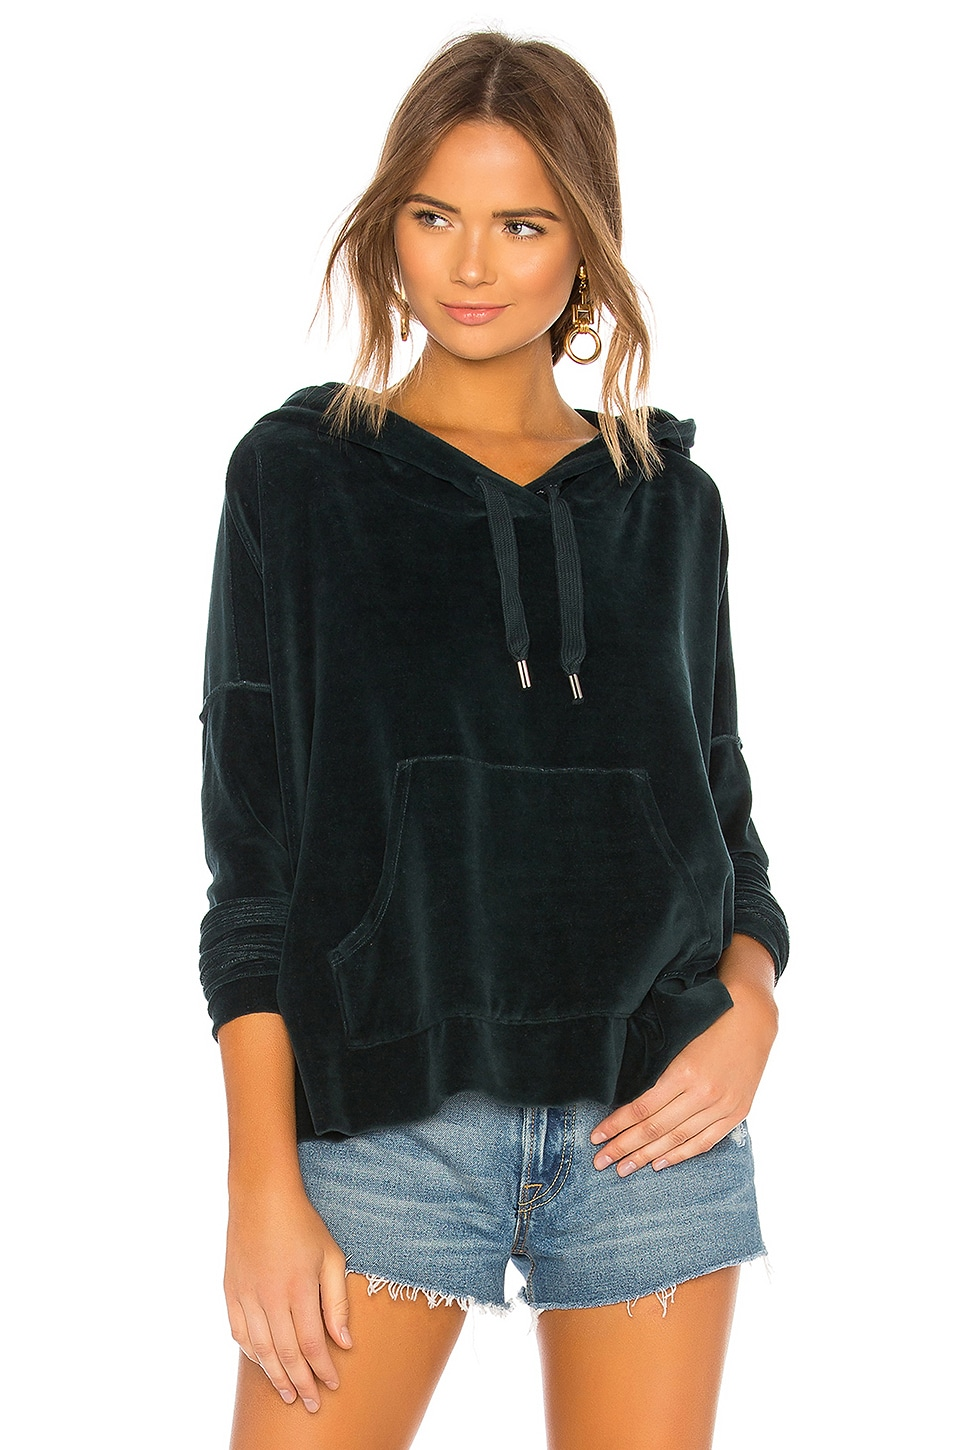 NSF Cakie Crop Hoodie in Emerald